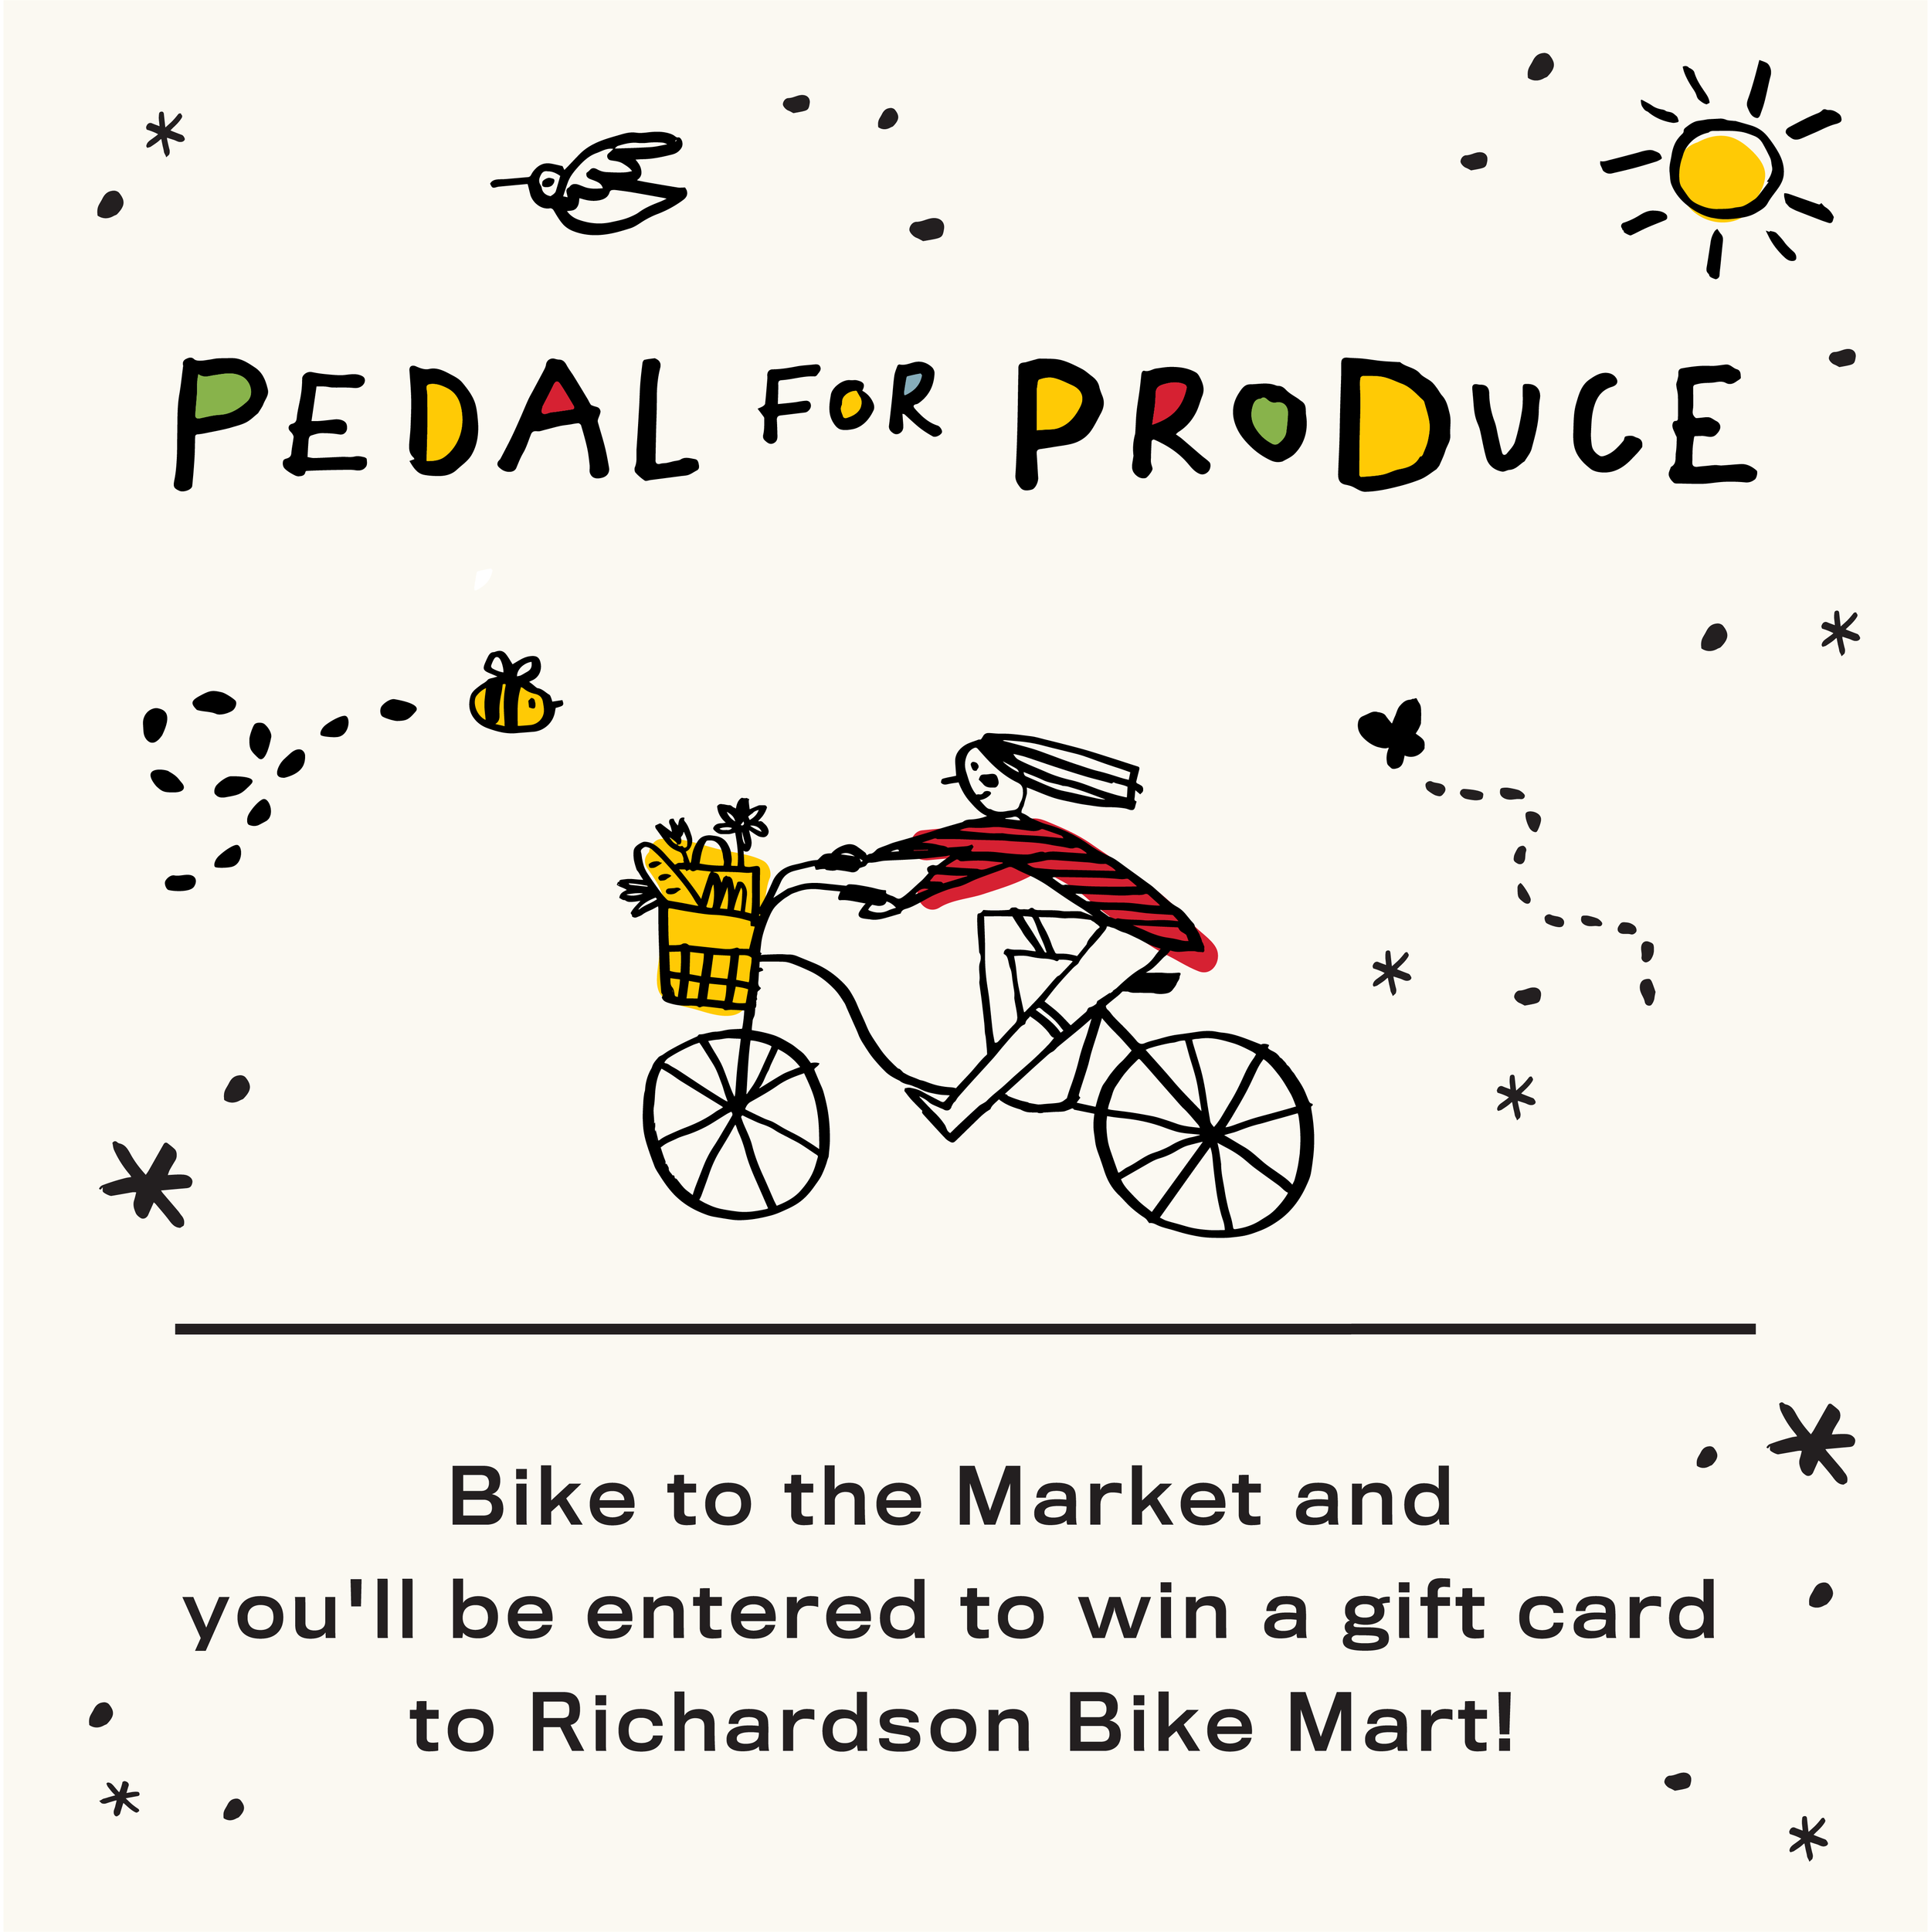 GLM-3-PedalProduce_Insta_v1-03 (1).png